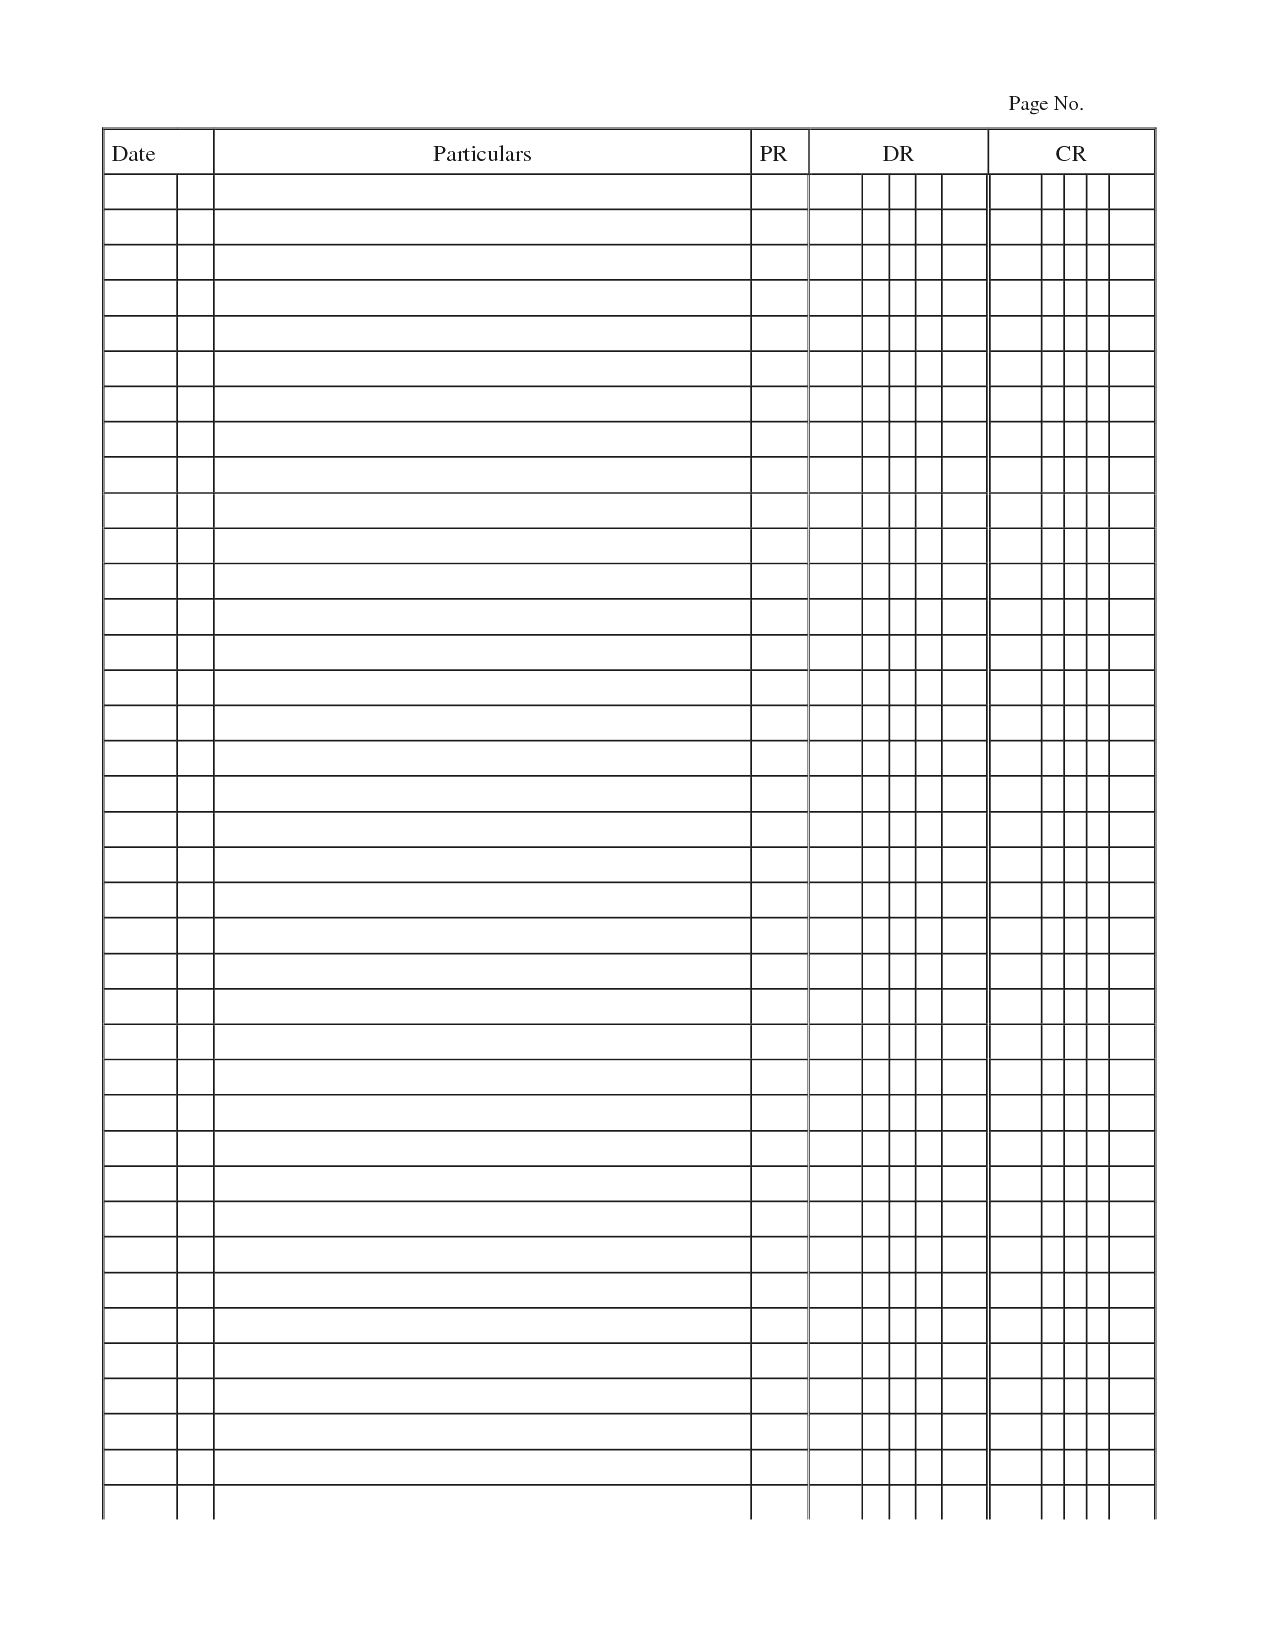 012 Template Ideas General Journal Ledger Accounting